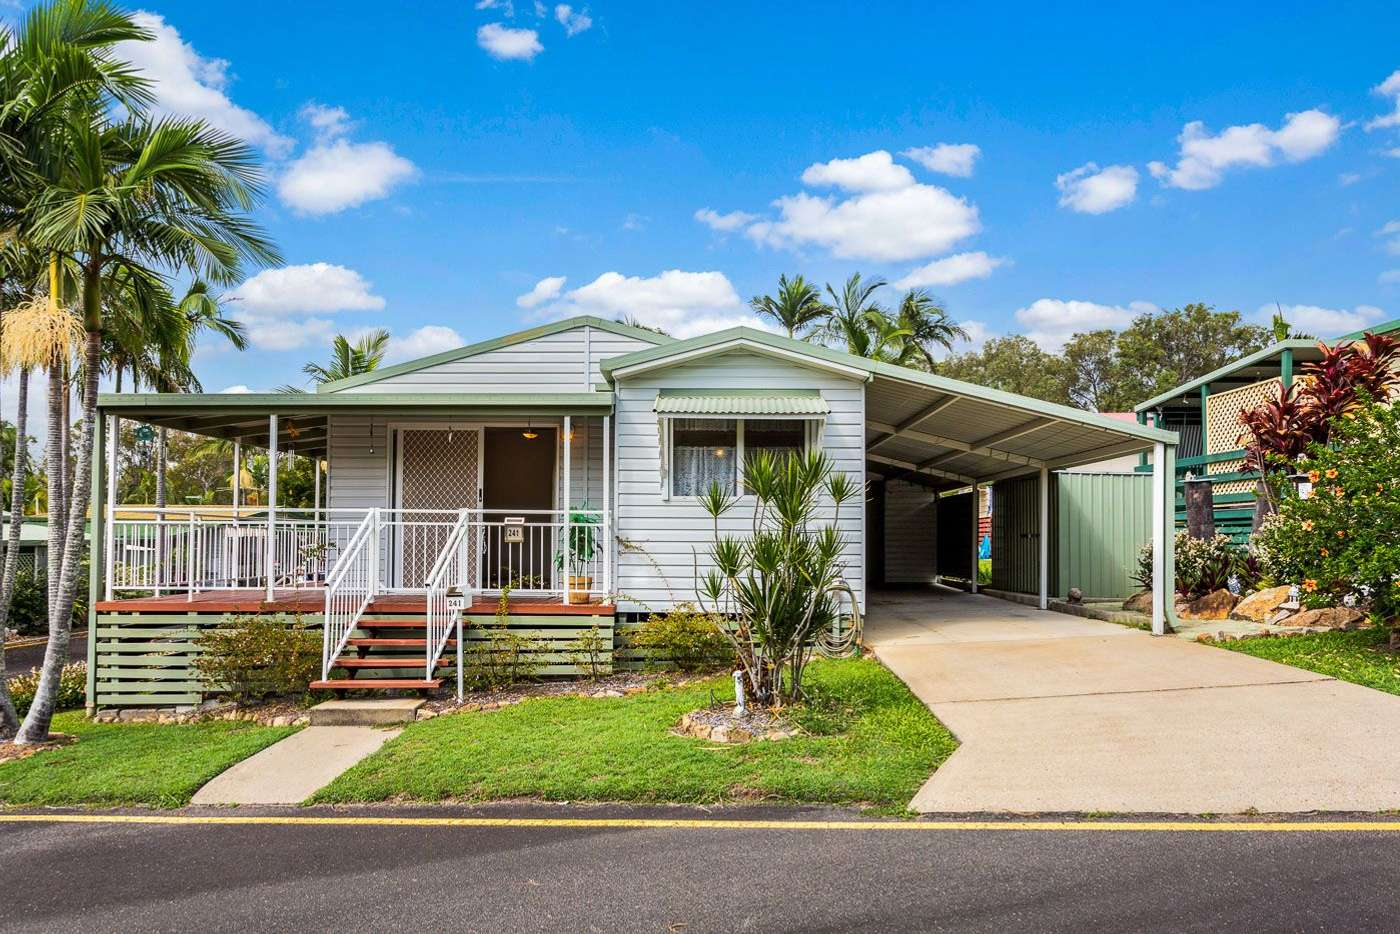 Main view of Homely other listing, 241/758 Blunder Road Palm Place, Durack QLD 4077